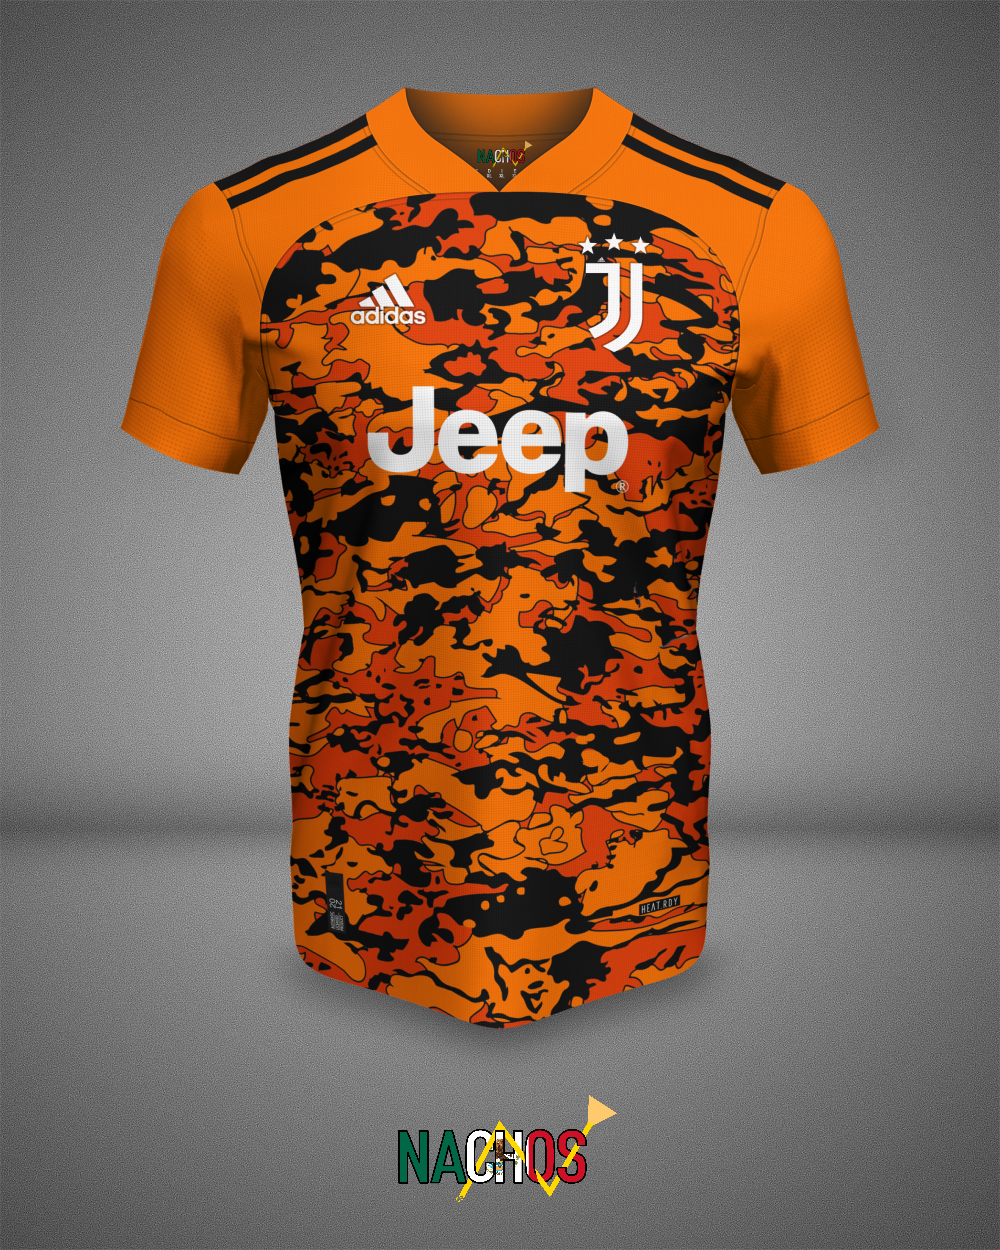 adidas juventus third 2020 21 kit adidas juventus third 2020 21 kit